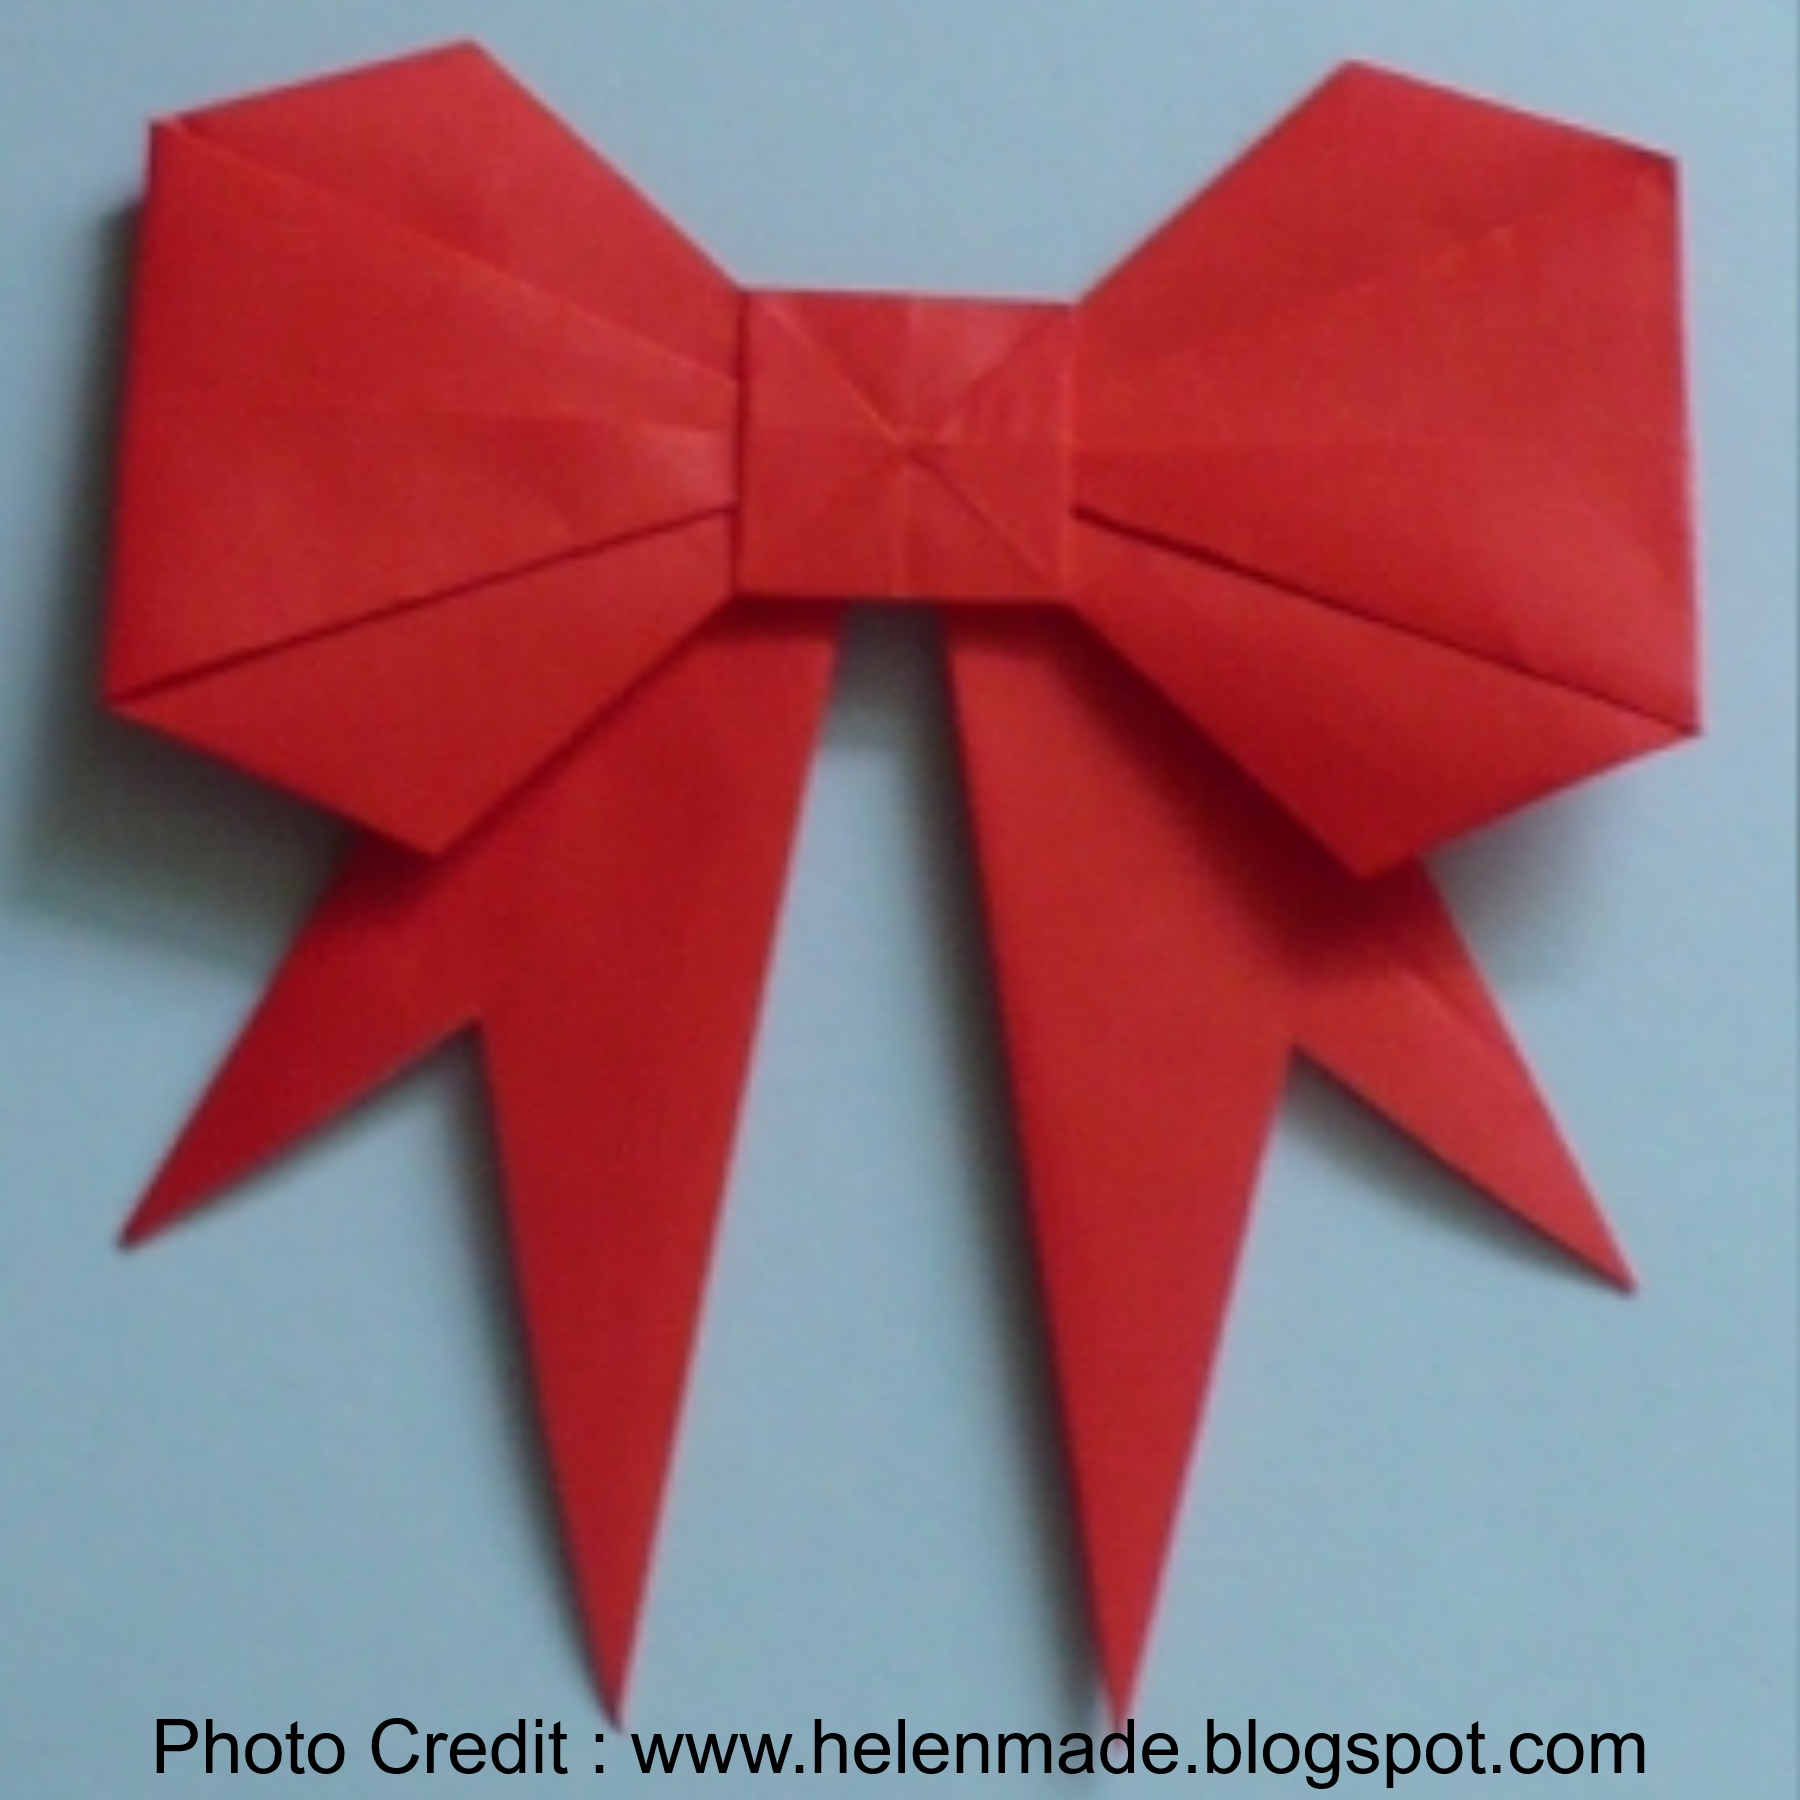 Paper Bow from Helen Made